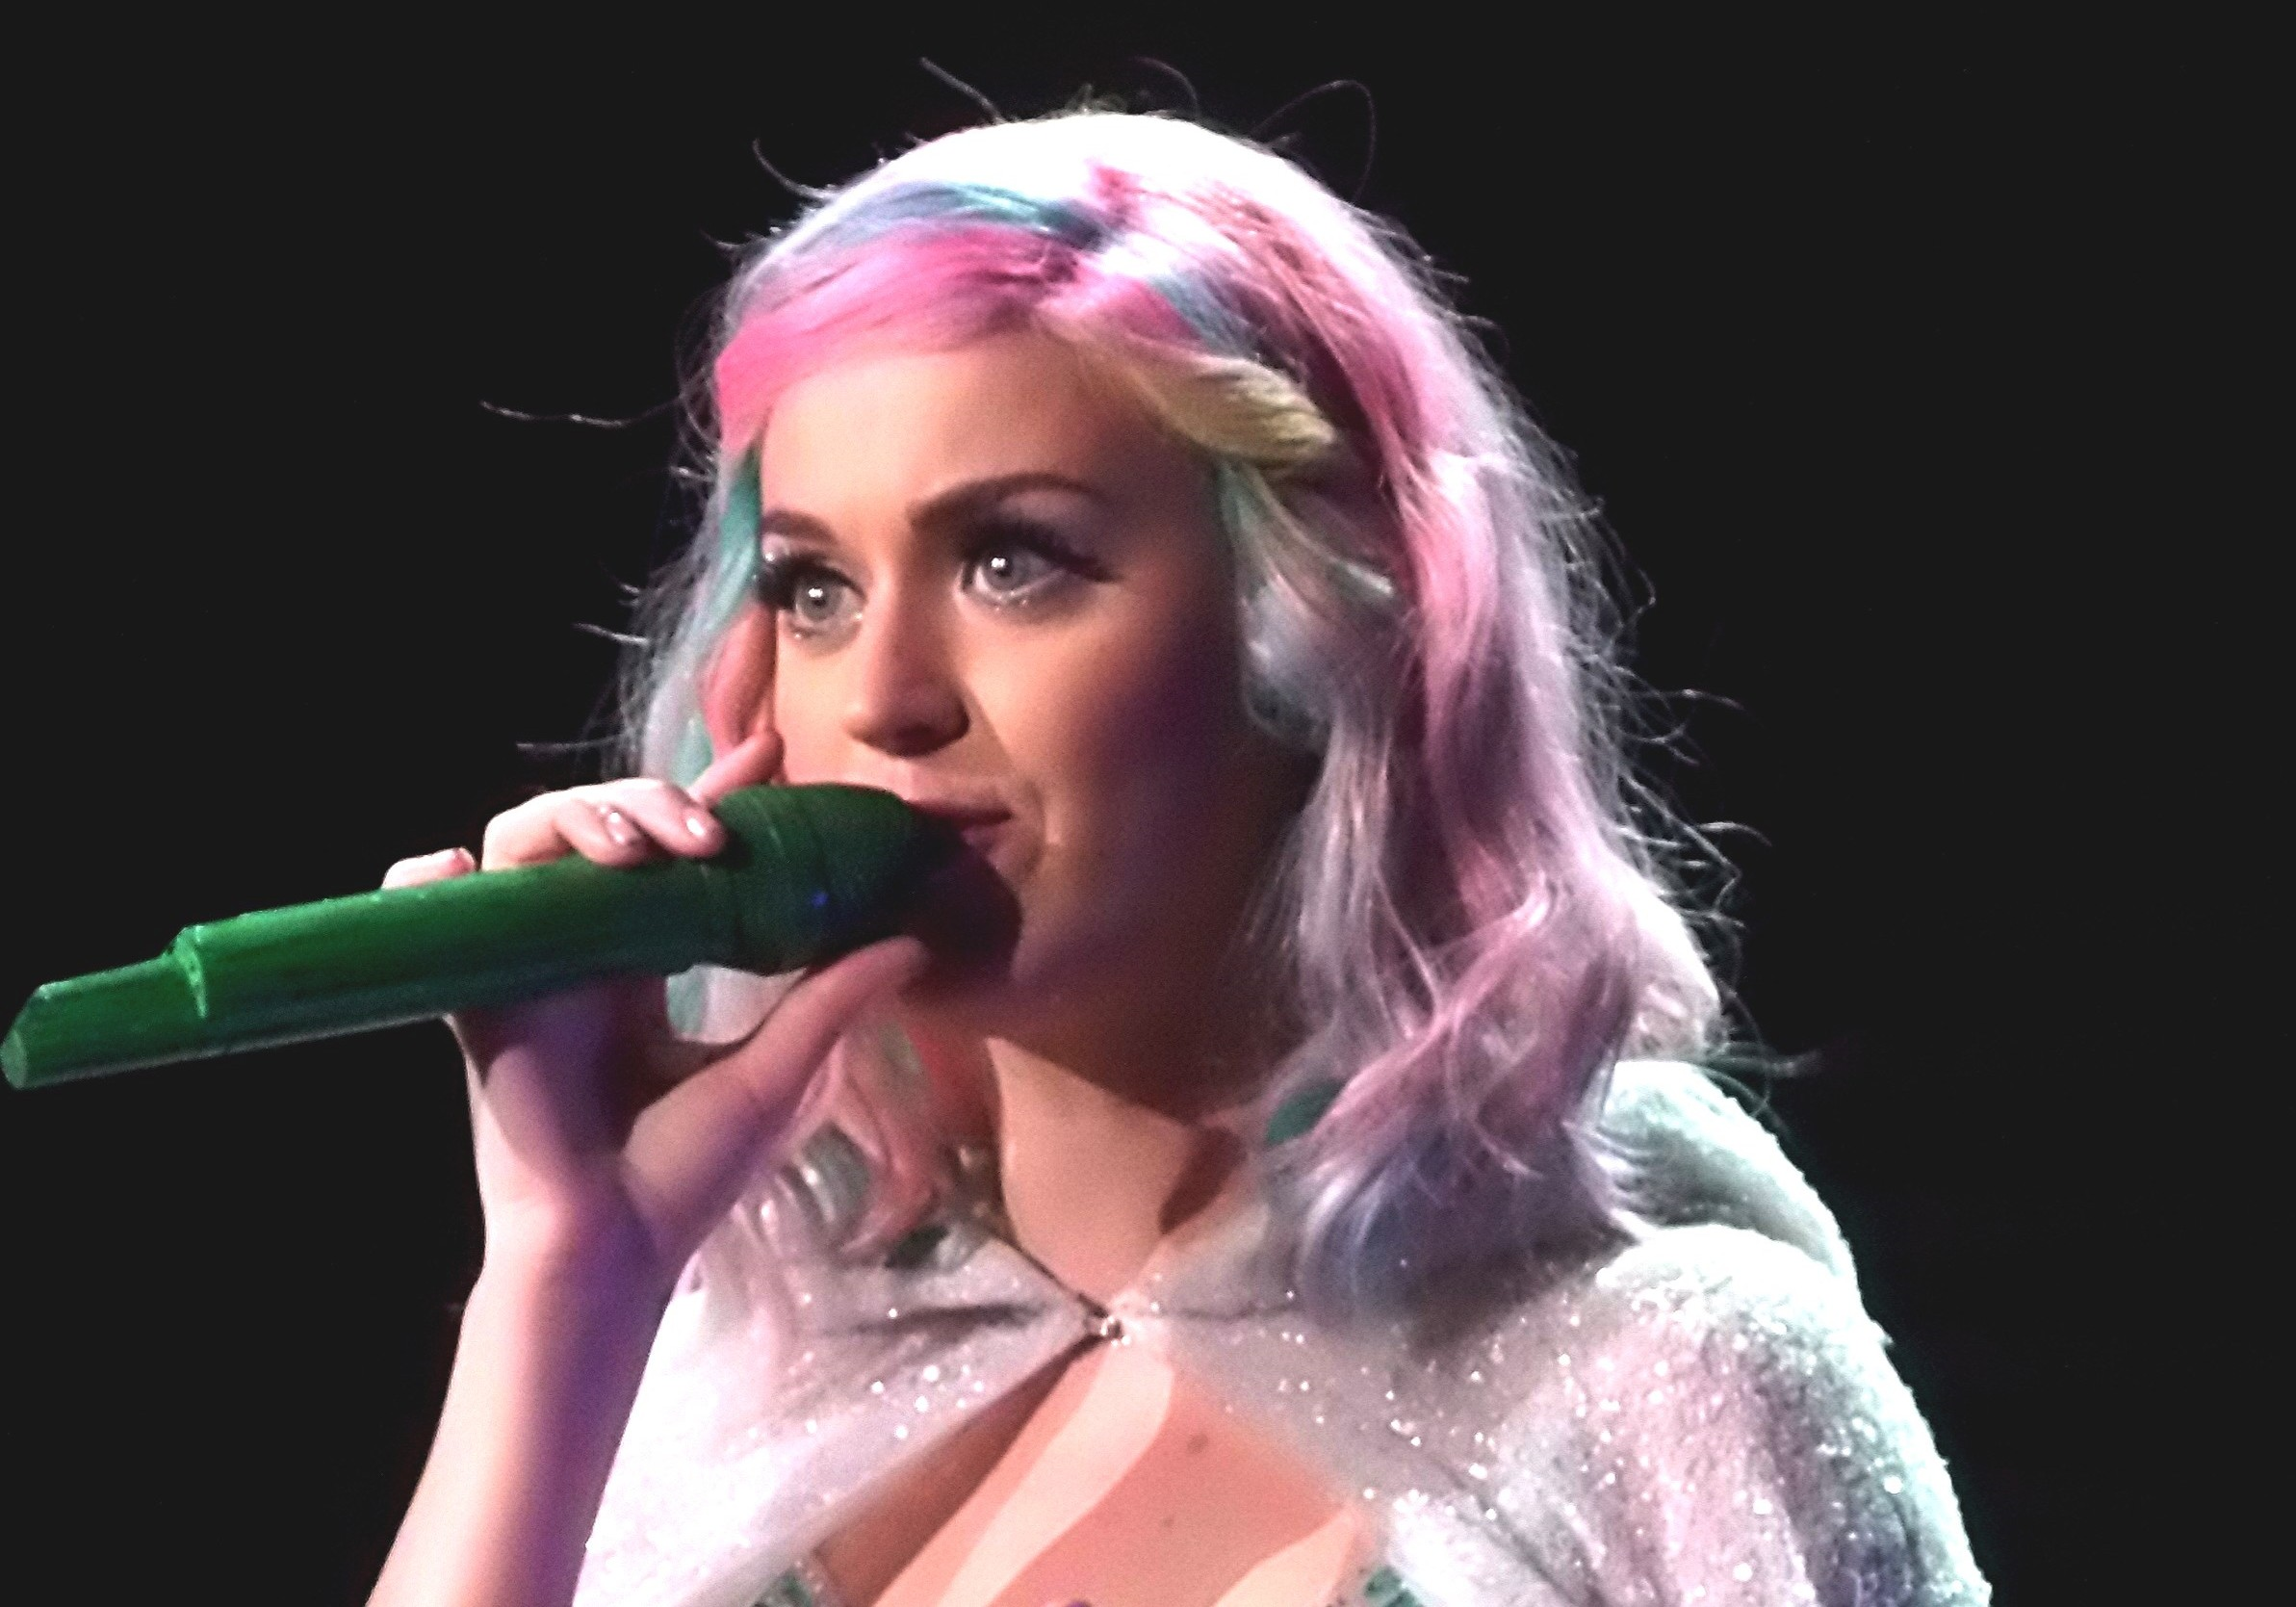 katy perry singing into a microphone while wearing a multicolor outfit